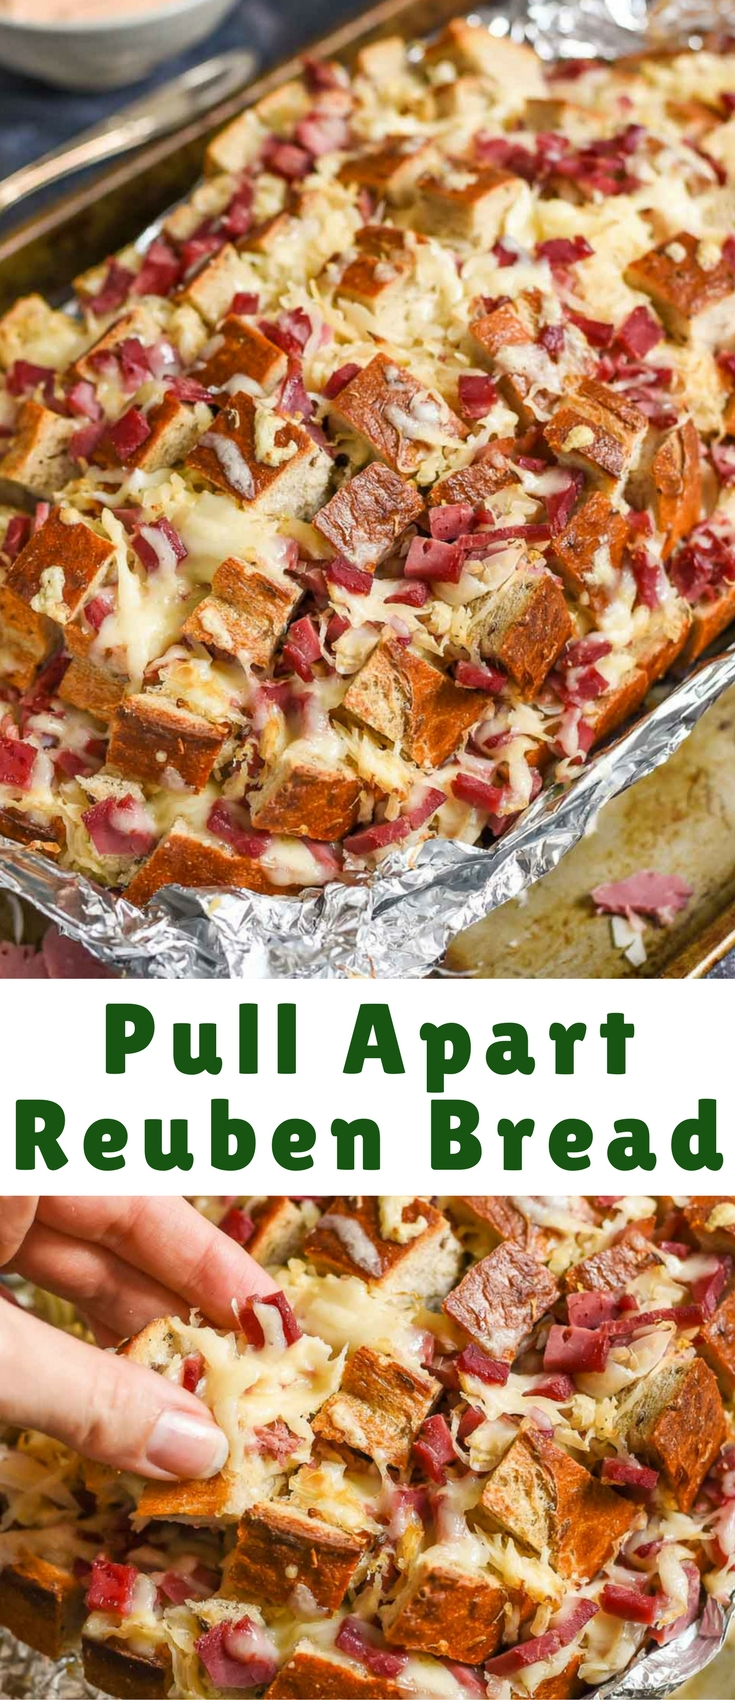 While feeding a toddler isn't always the most rewarding job, it can lead to some pleasant surprises. One of those happy surprises involved this giant loaf of Reuben Pull Apart Bread.